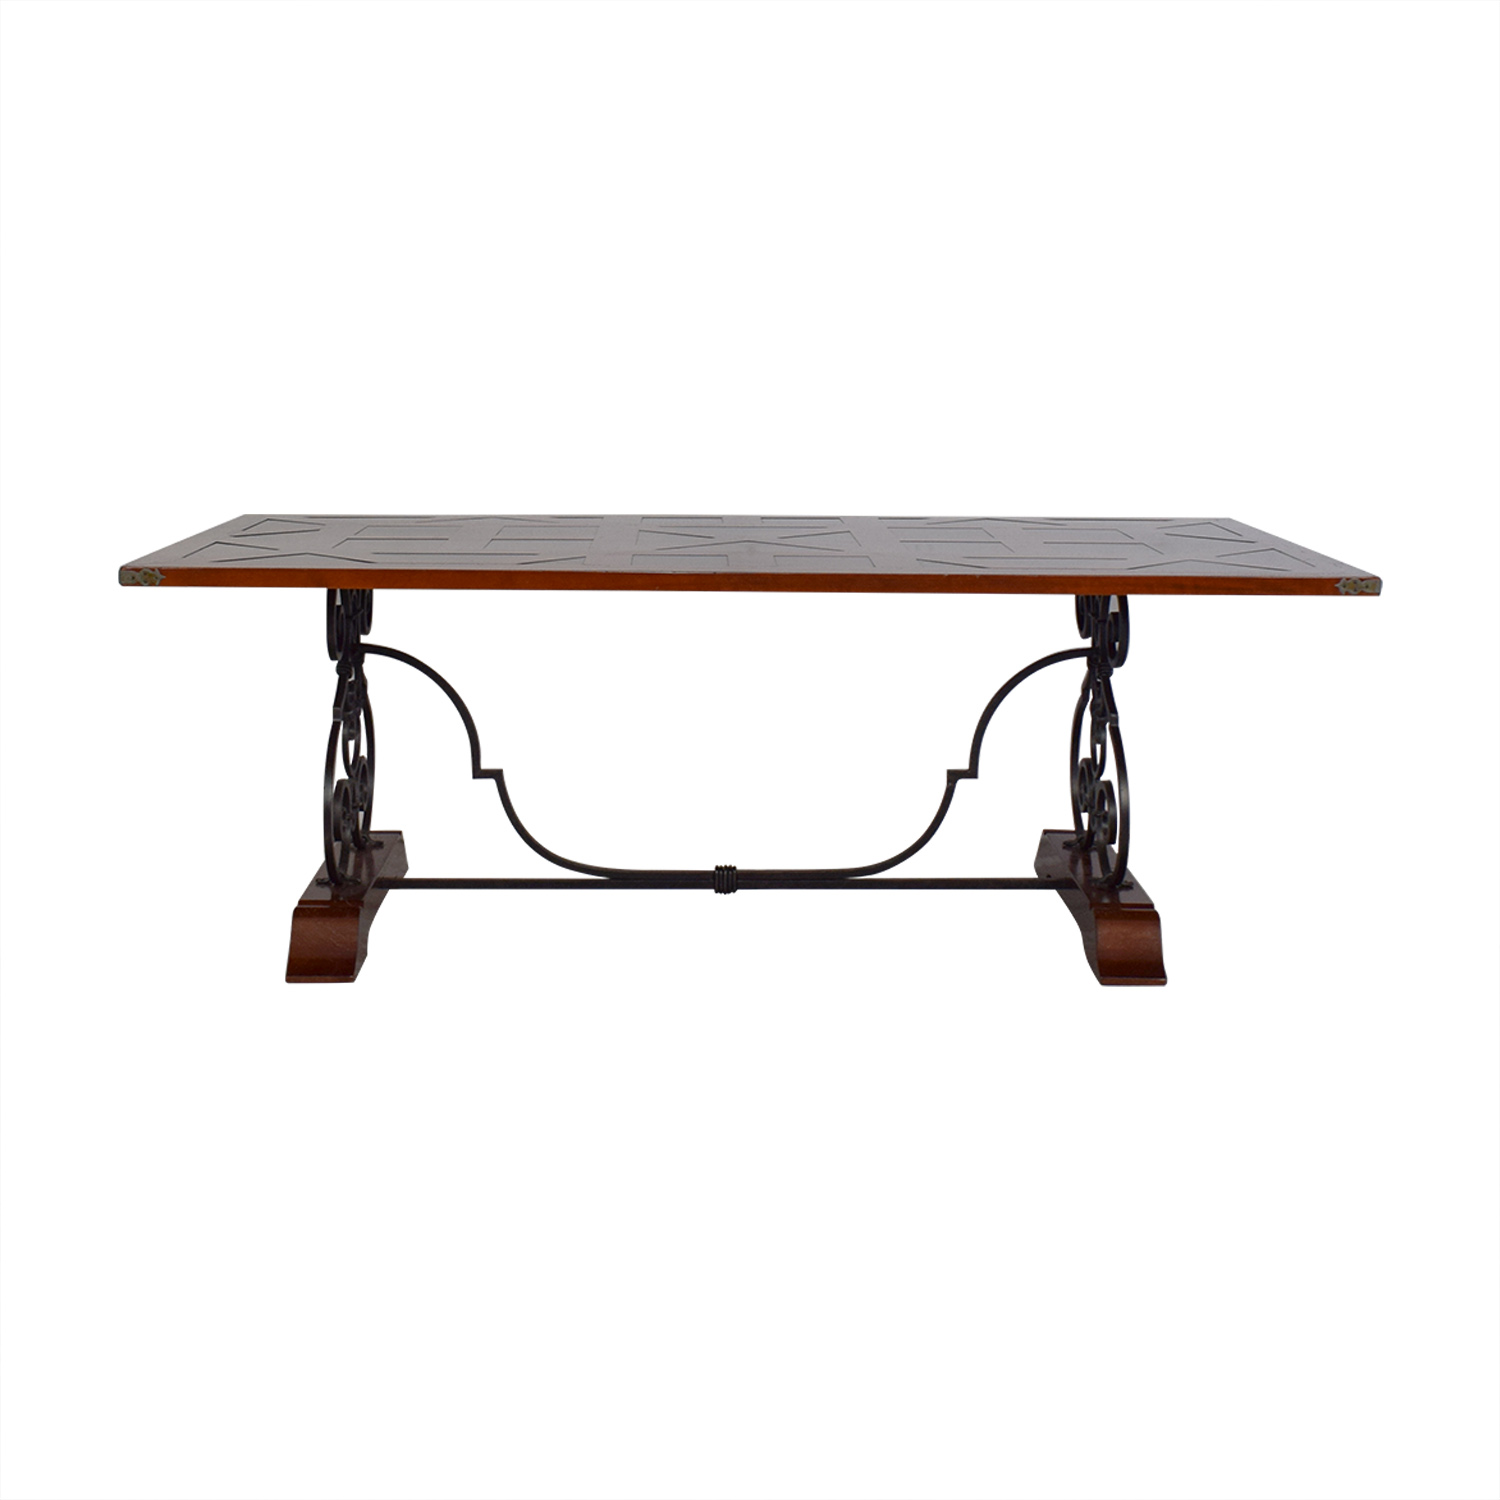 Grange Grange Inlaid French Country Dining Table on sale